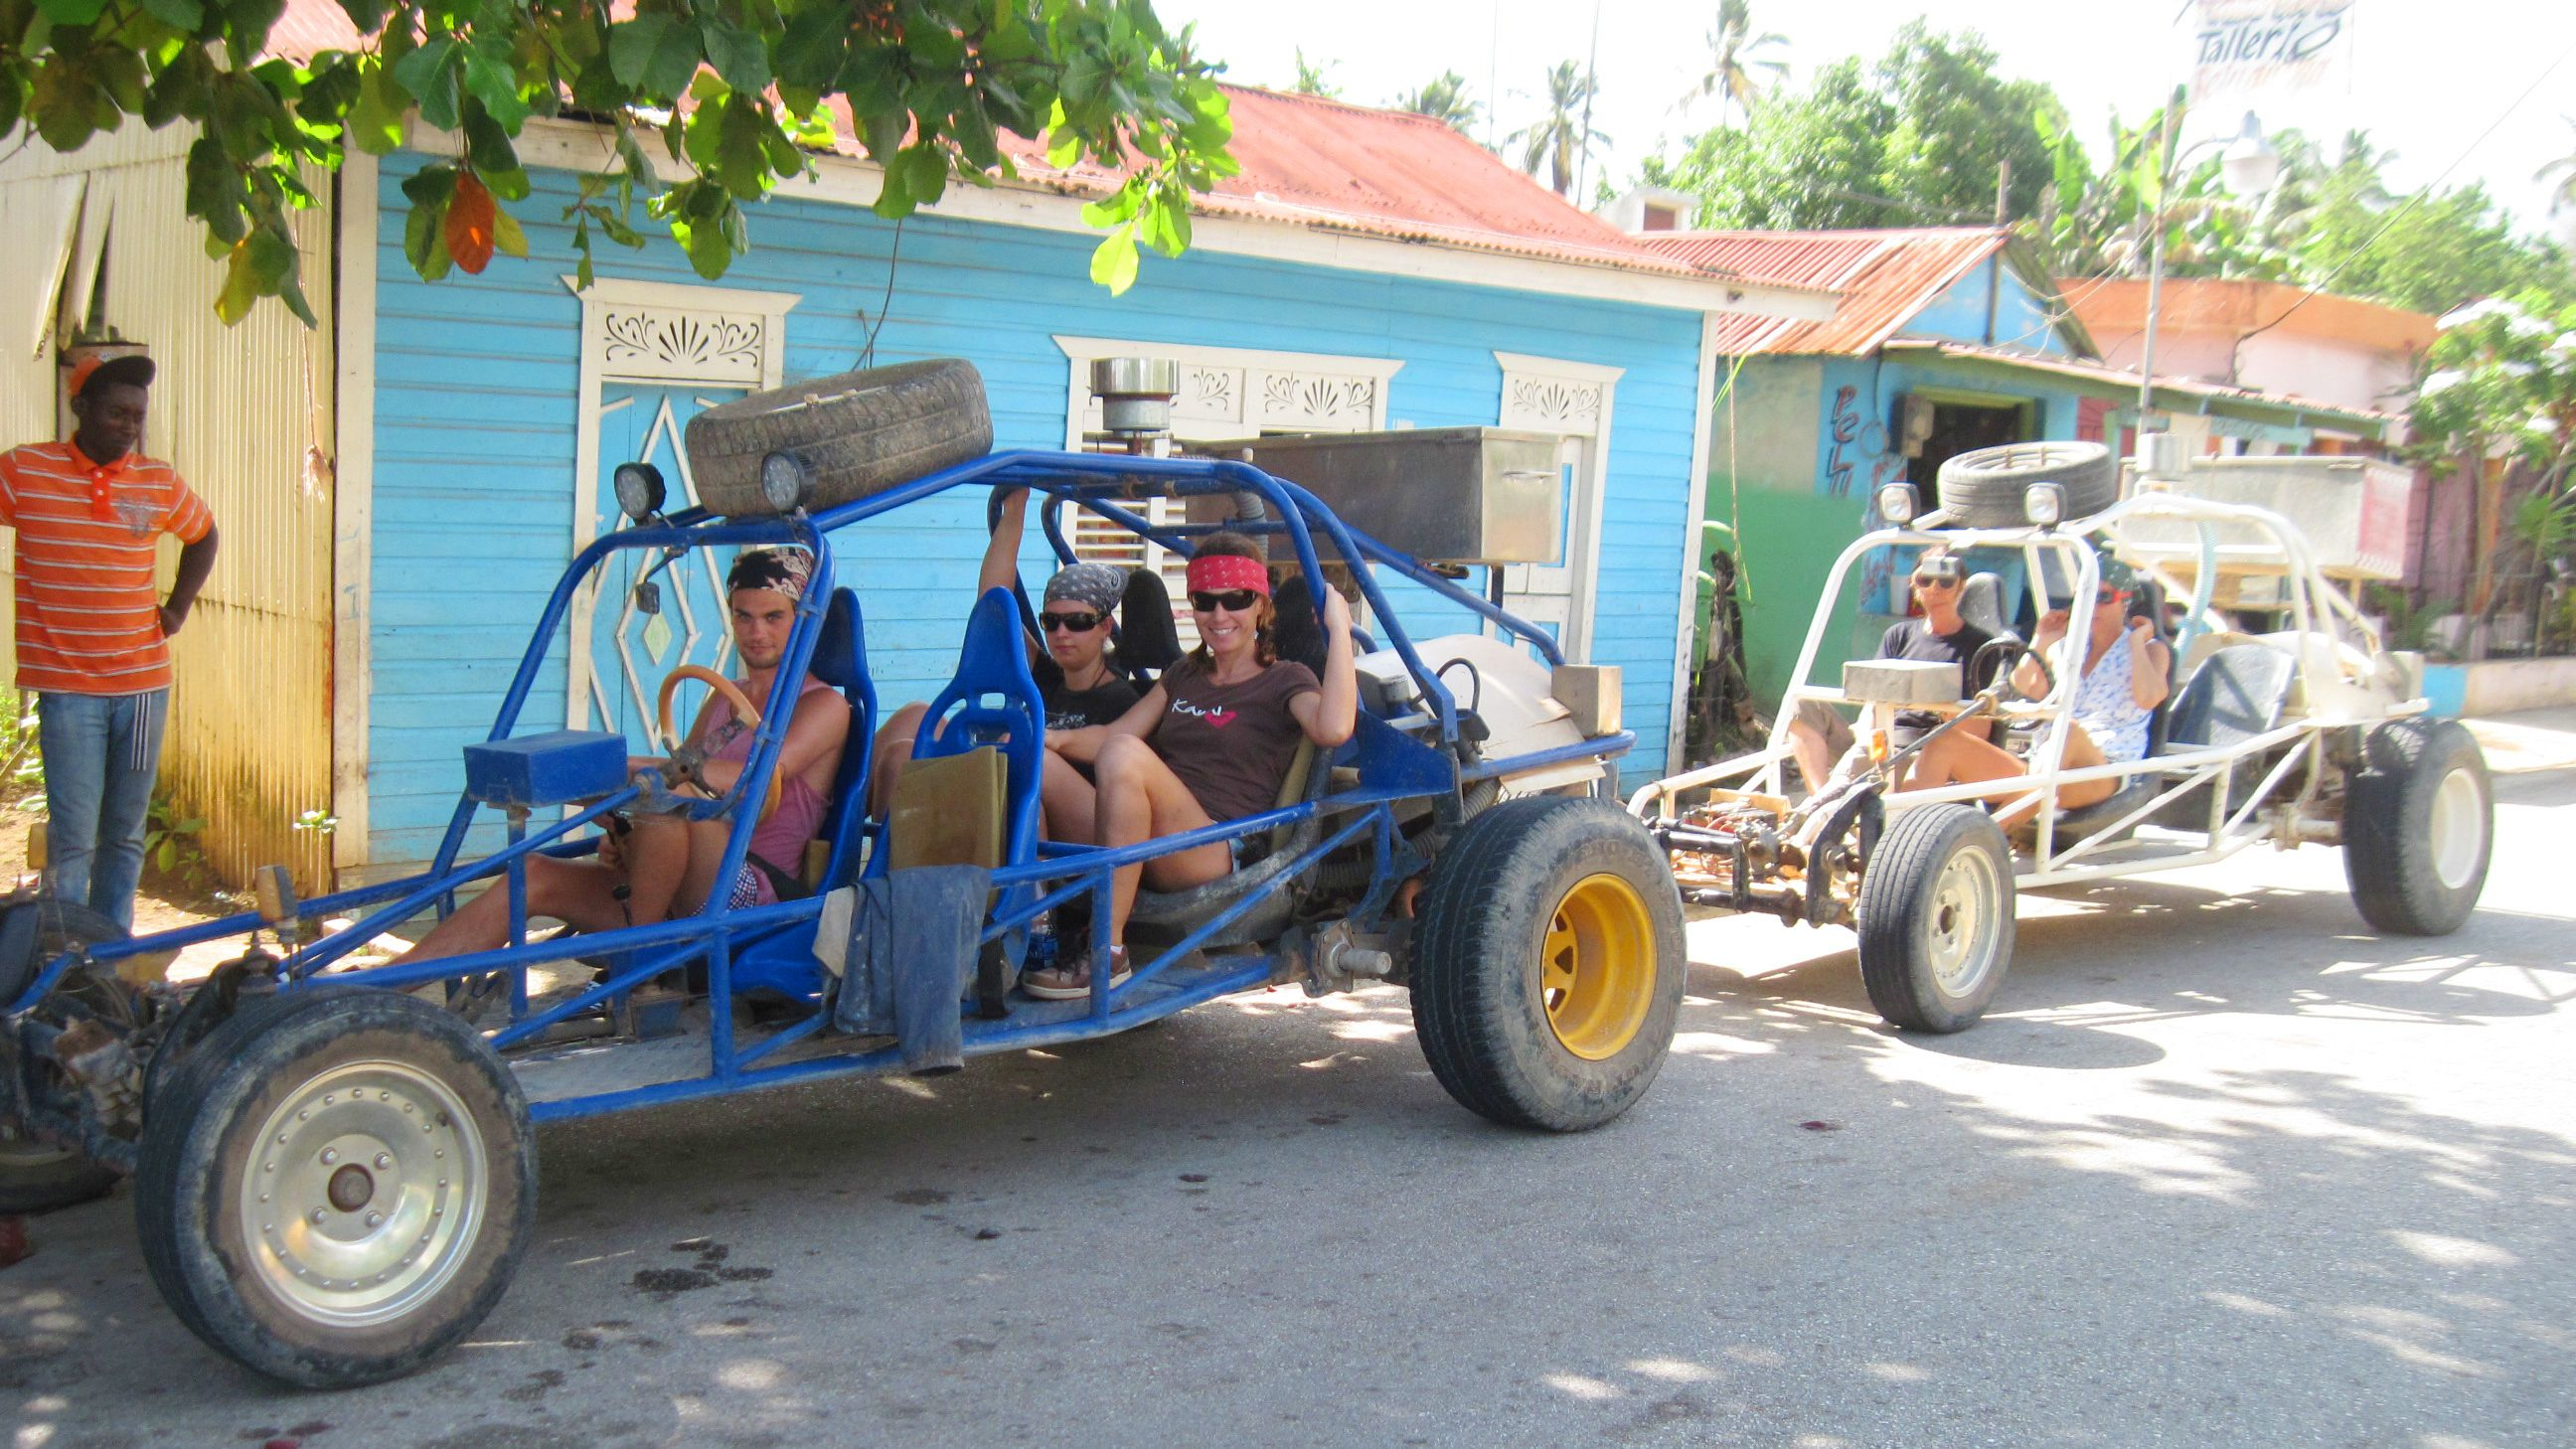 dune buggies parked on road in village in Santo Domingo